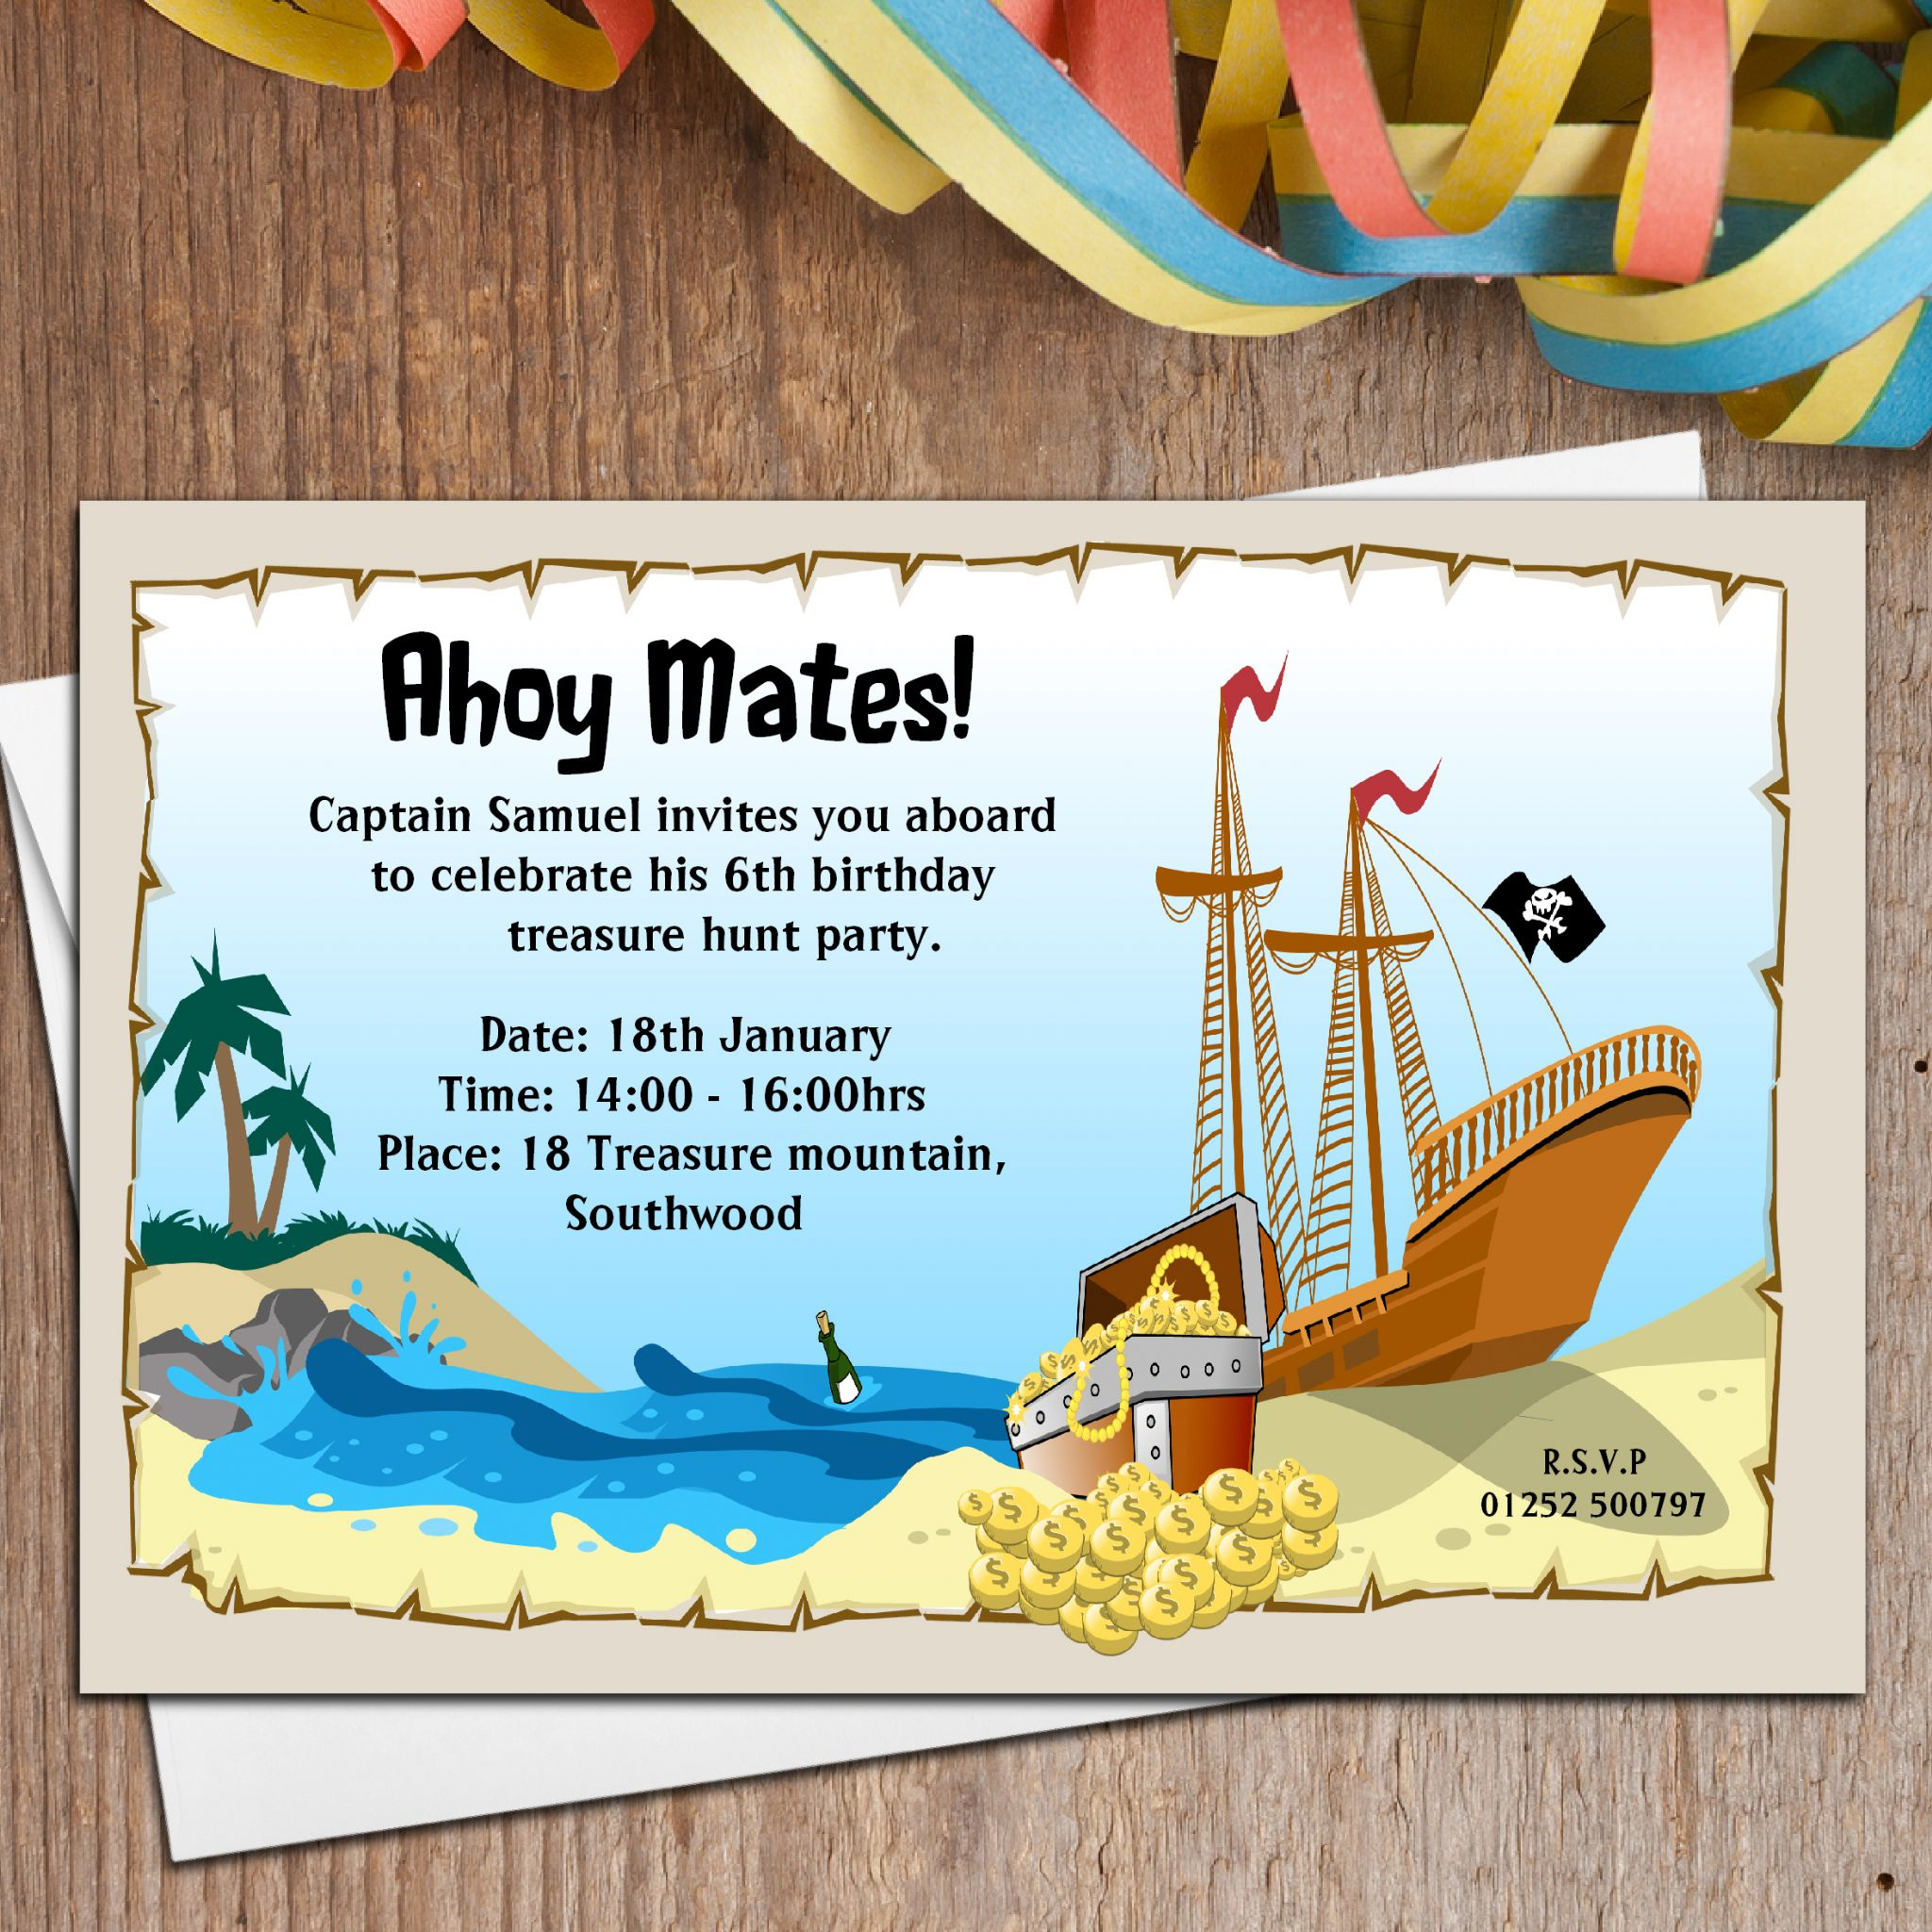 10 Personalised Pirate Shipwreck Party Invitations Invites N4 – Treasure Hunt Party Invitations